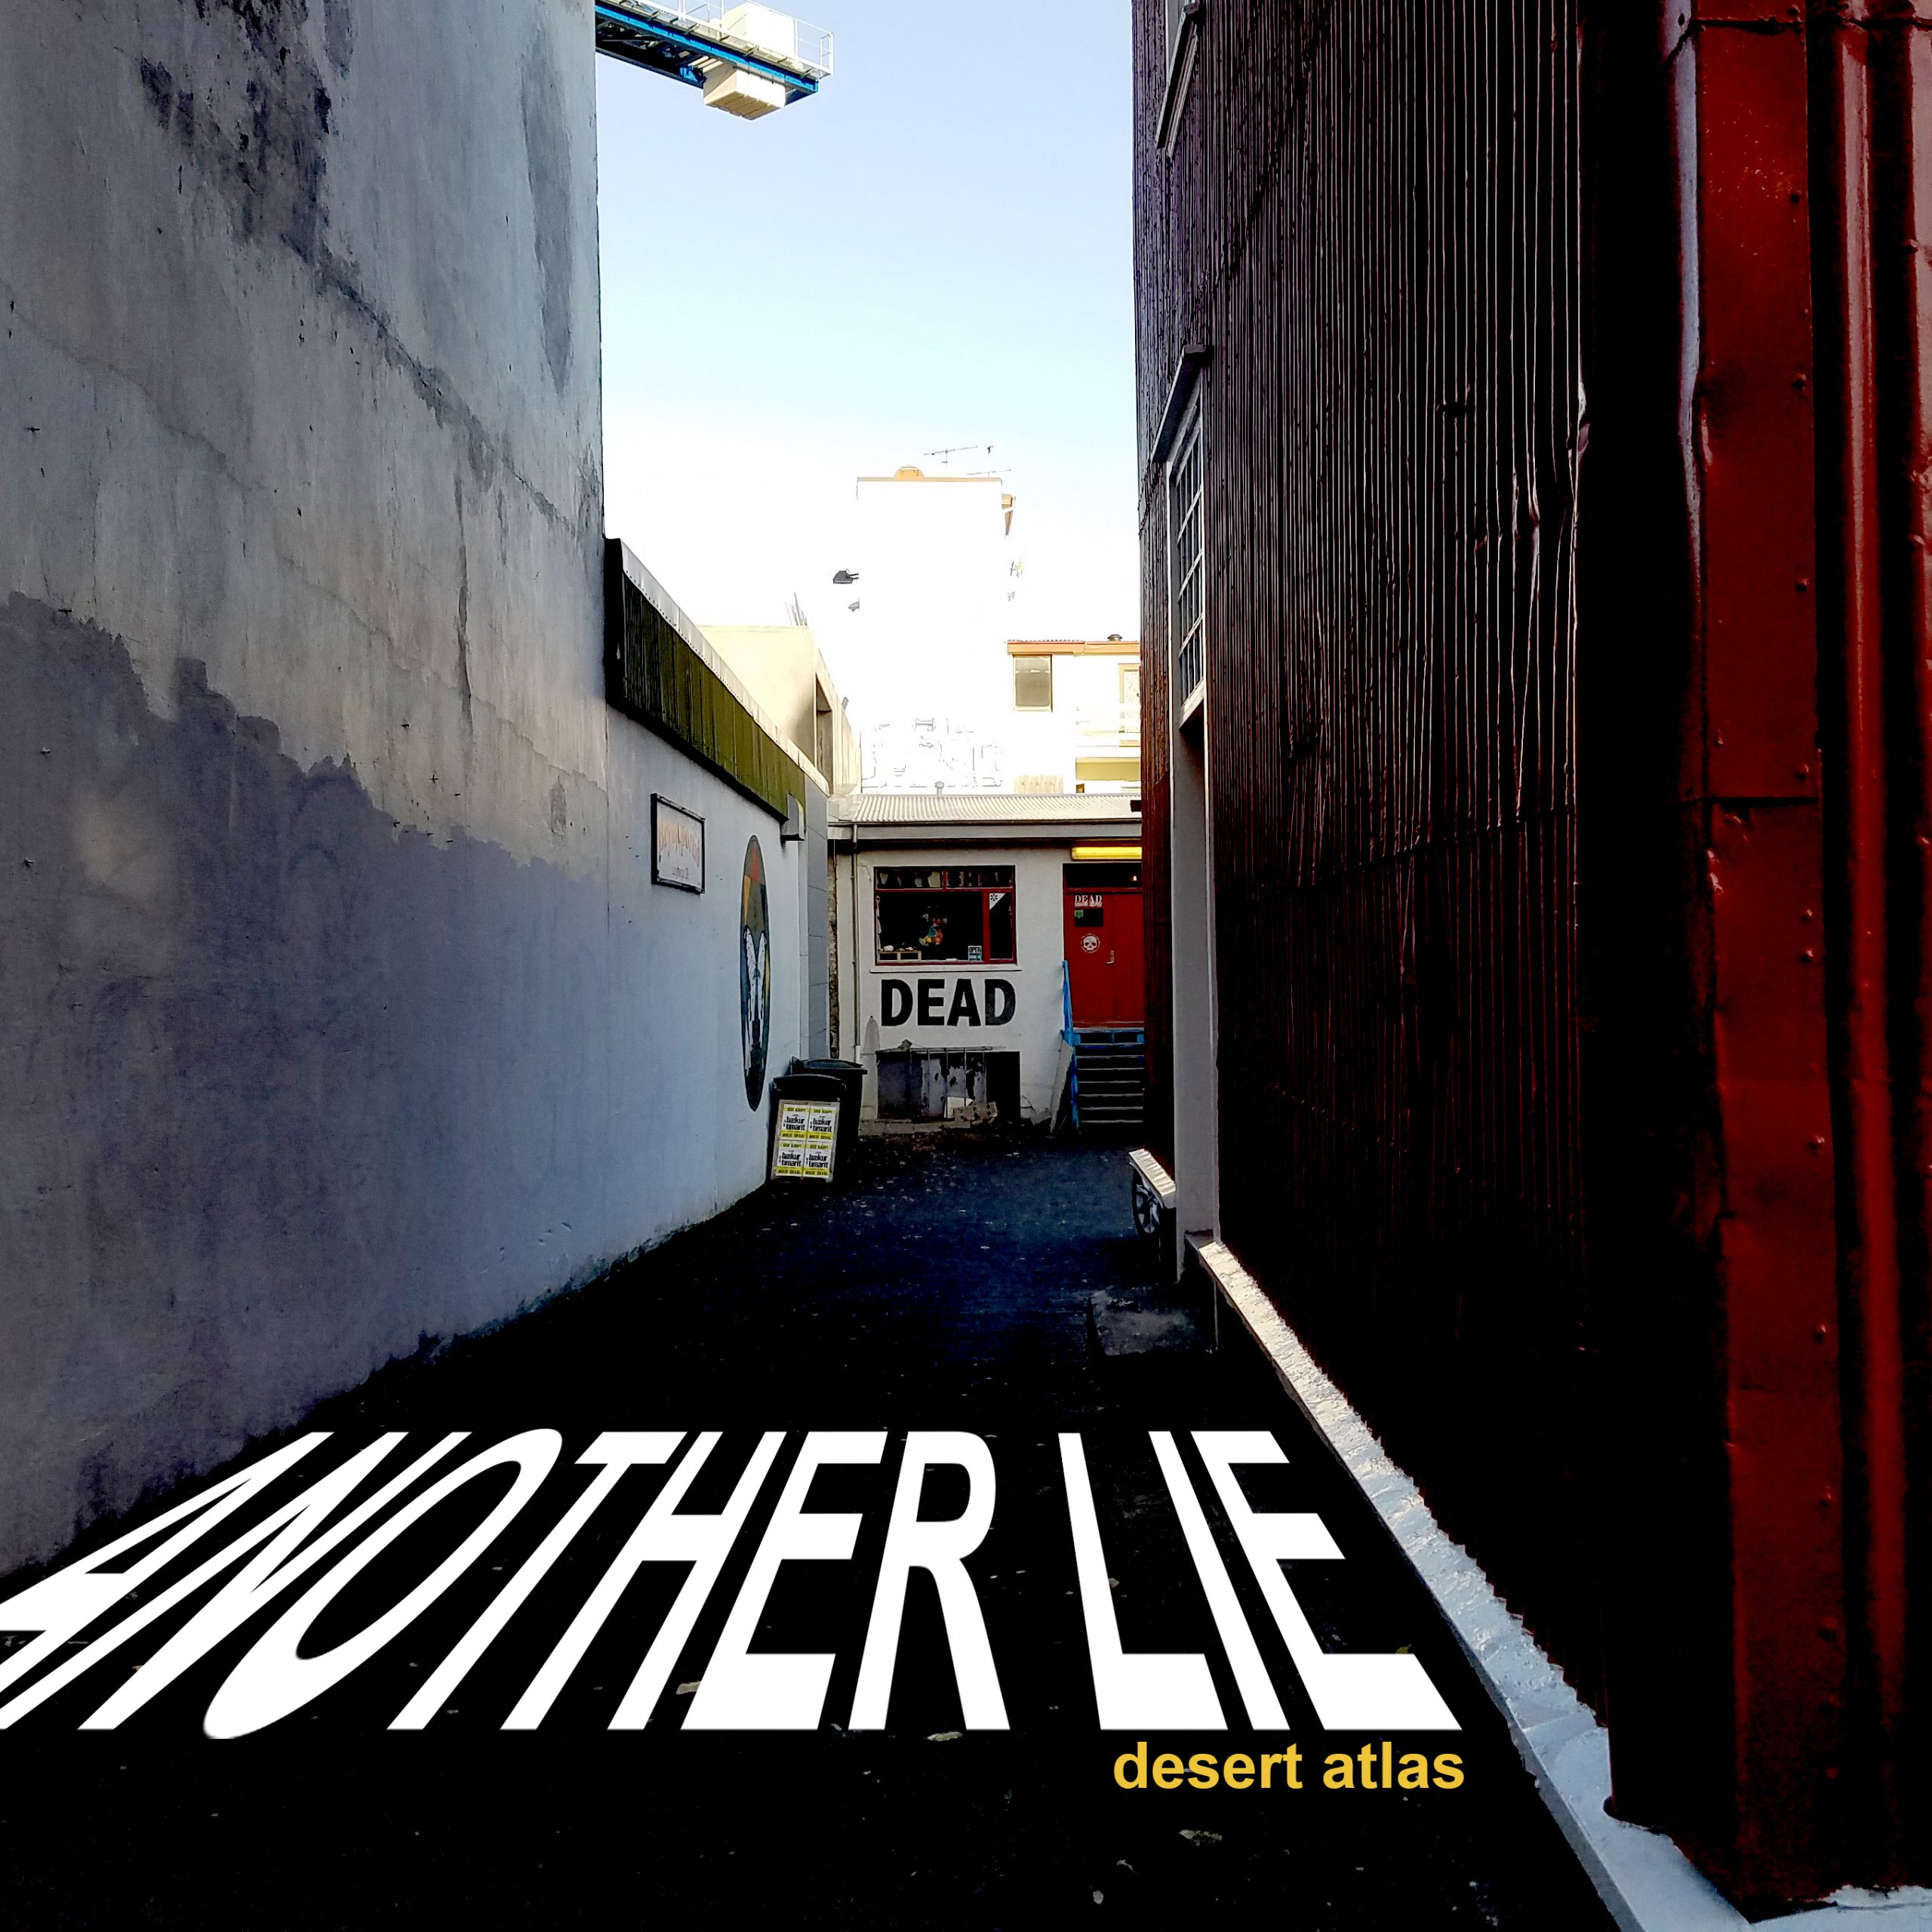 Now on Spotify, Apple Music / iTunes, Amazon Music: 'Another Lie'